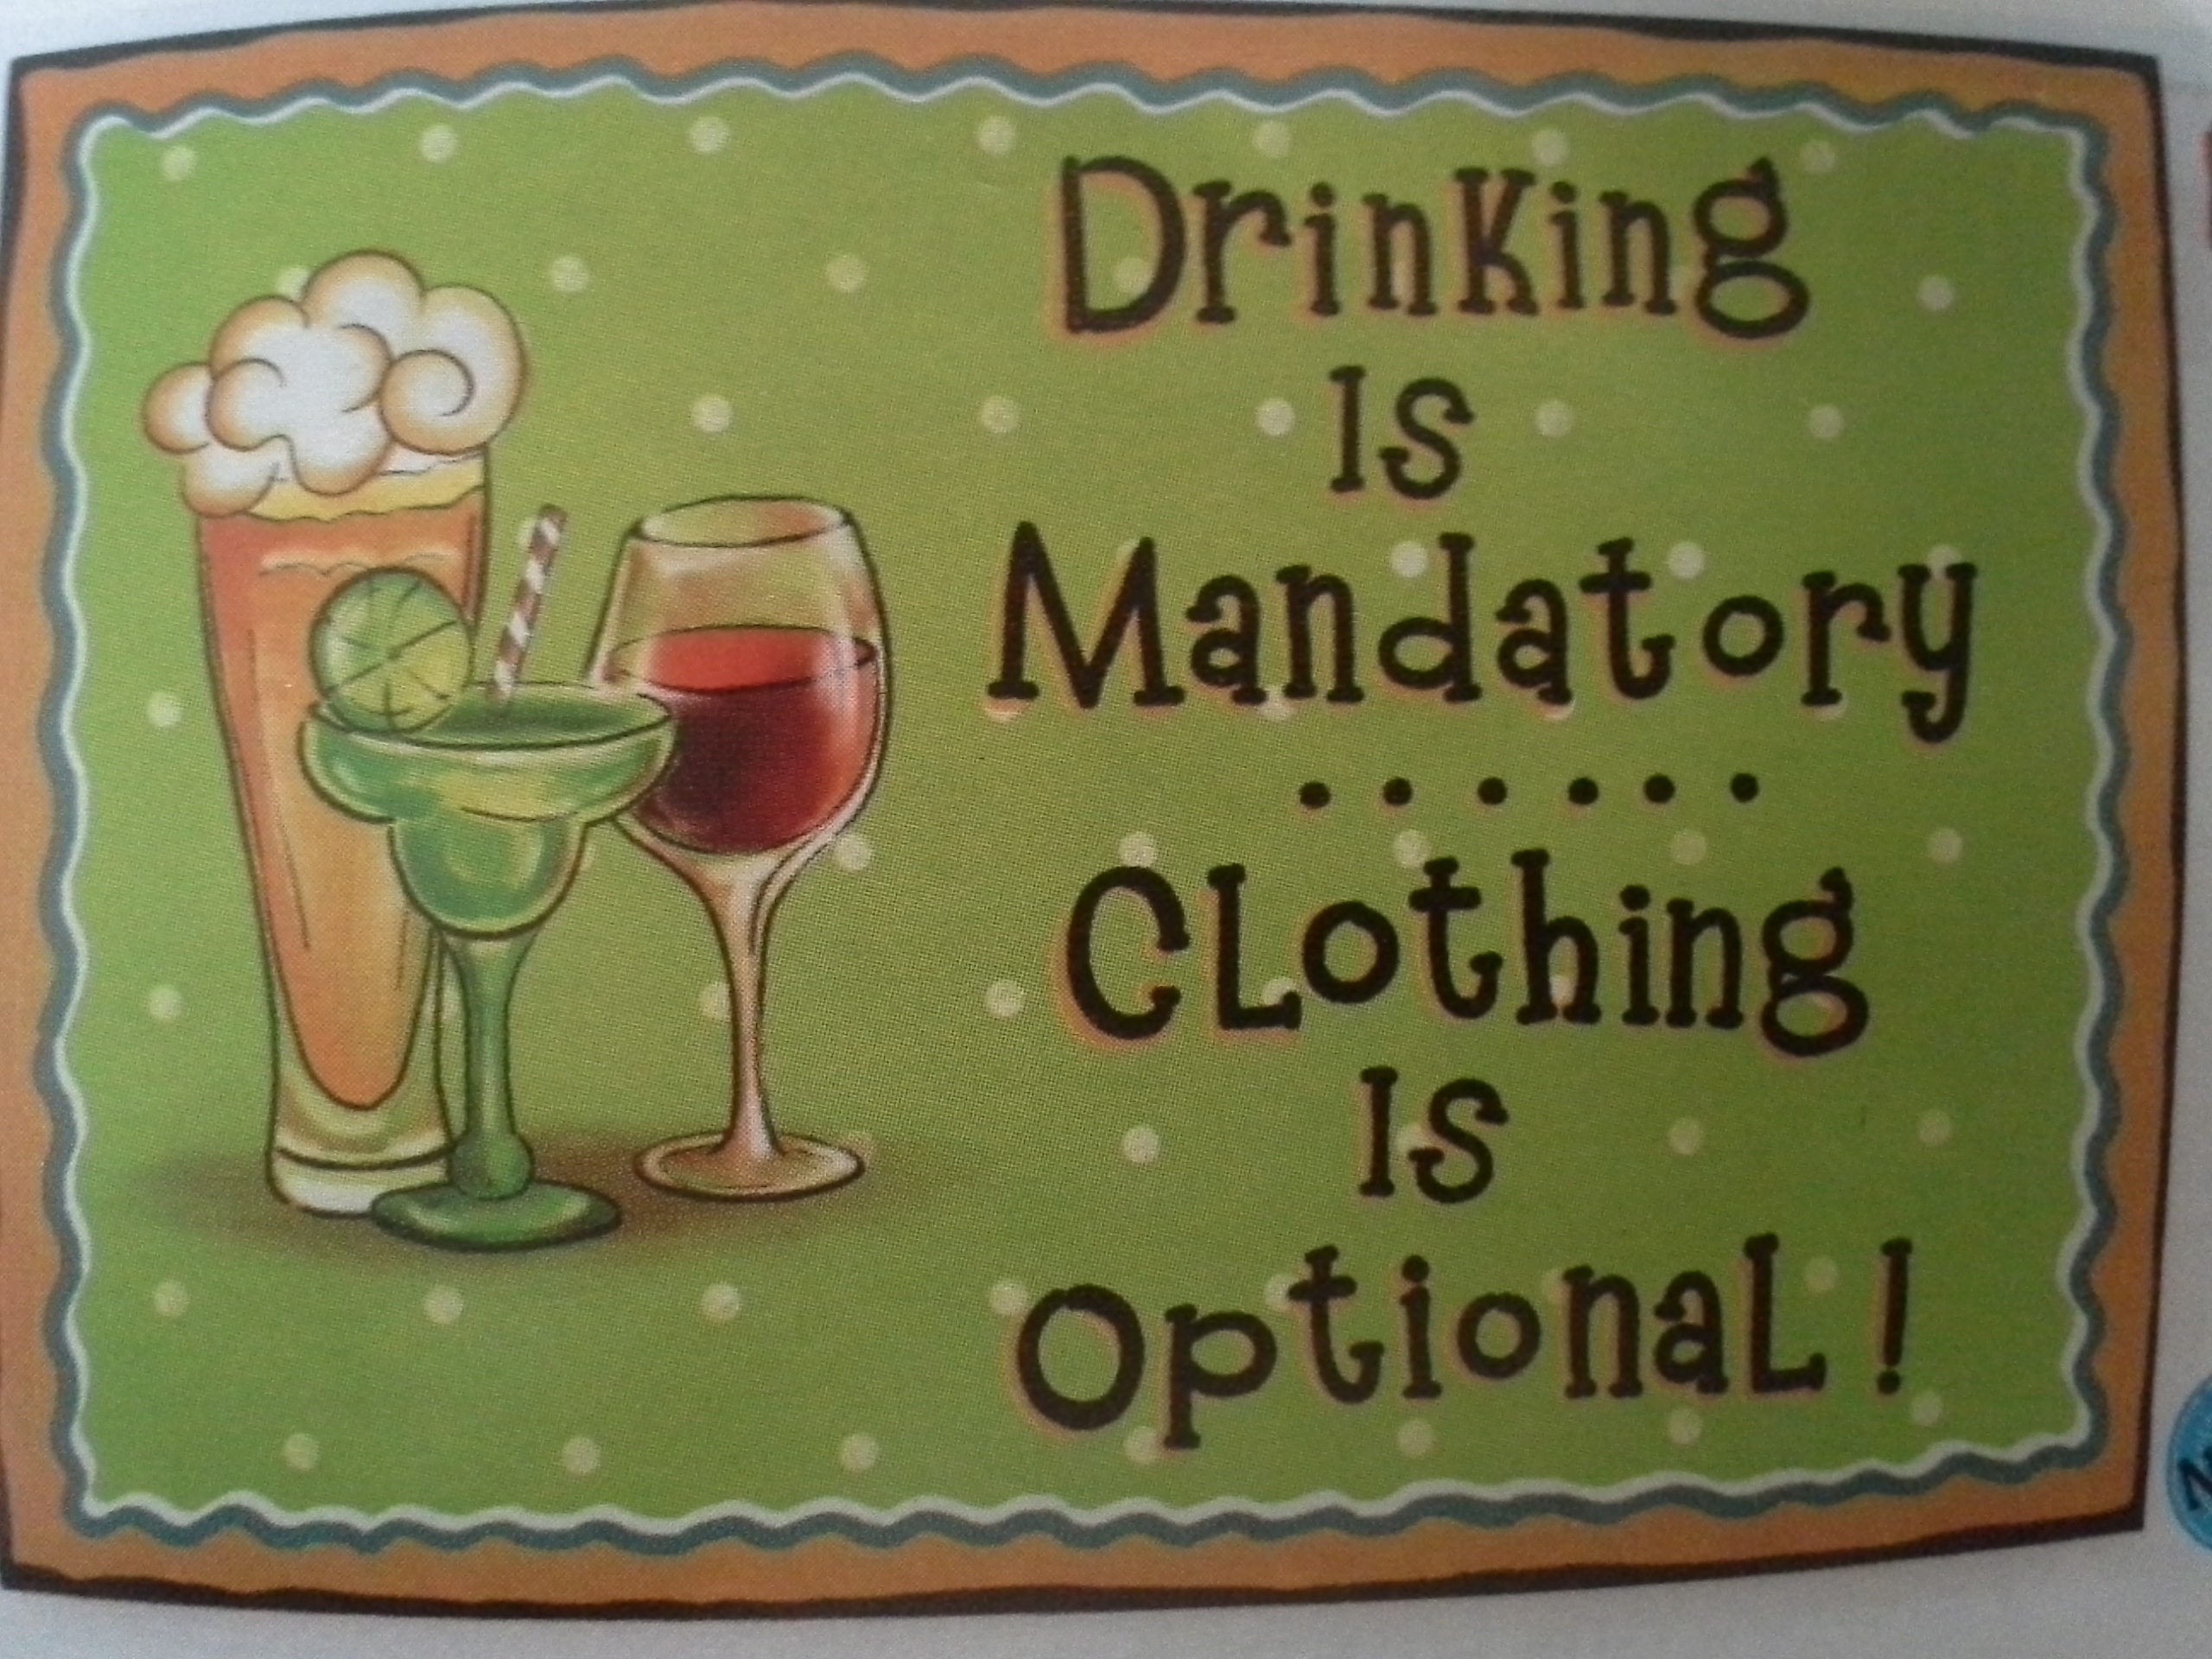 Drinking Is Mandatory Clothing Is Optional Wood Sign Tikikev